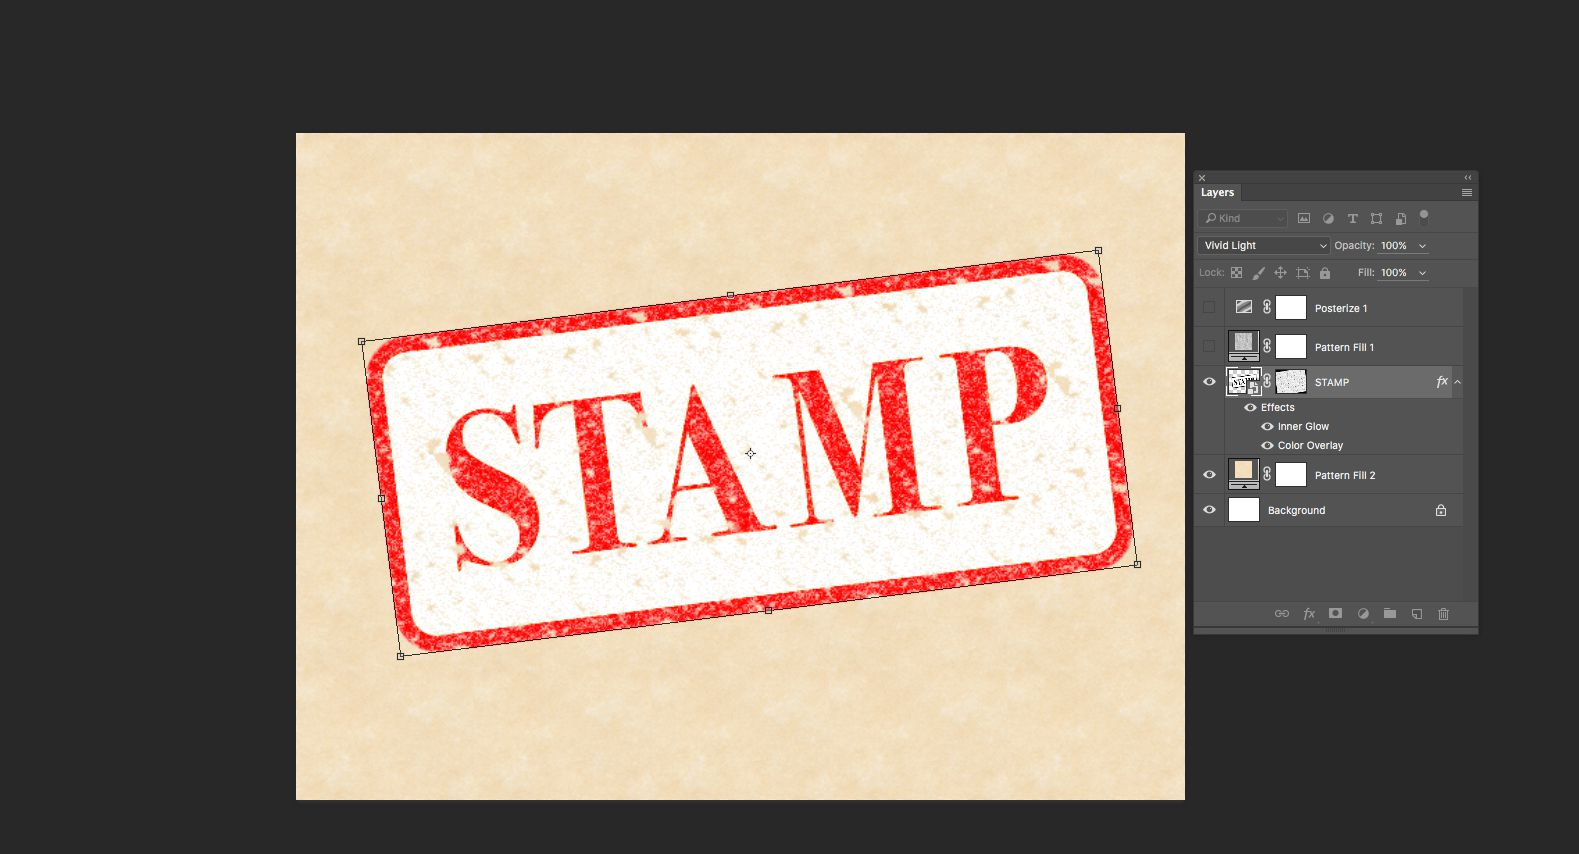 The Vivid Light blend mode is applied to the Stamp layer and the Stamp Layer is slightly rotated